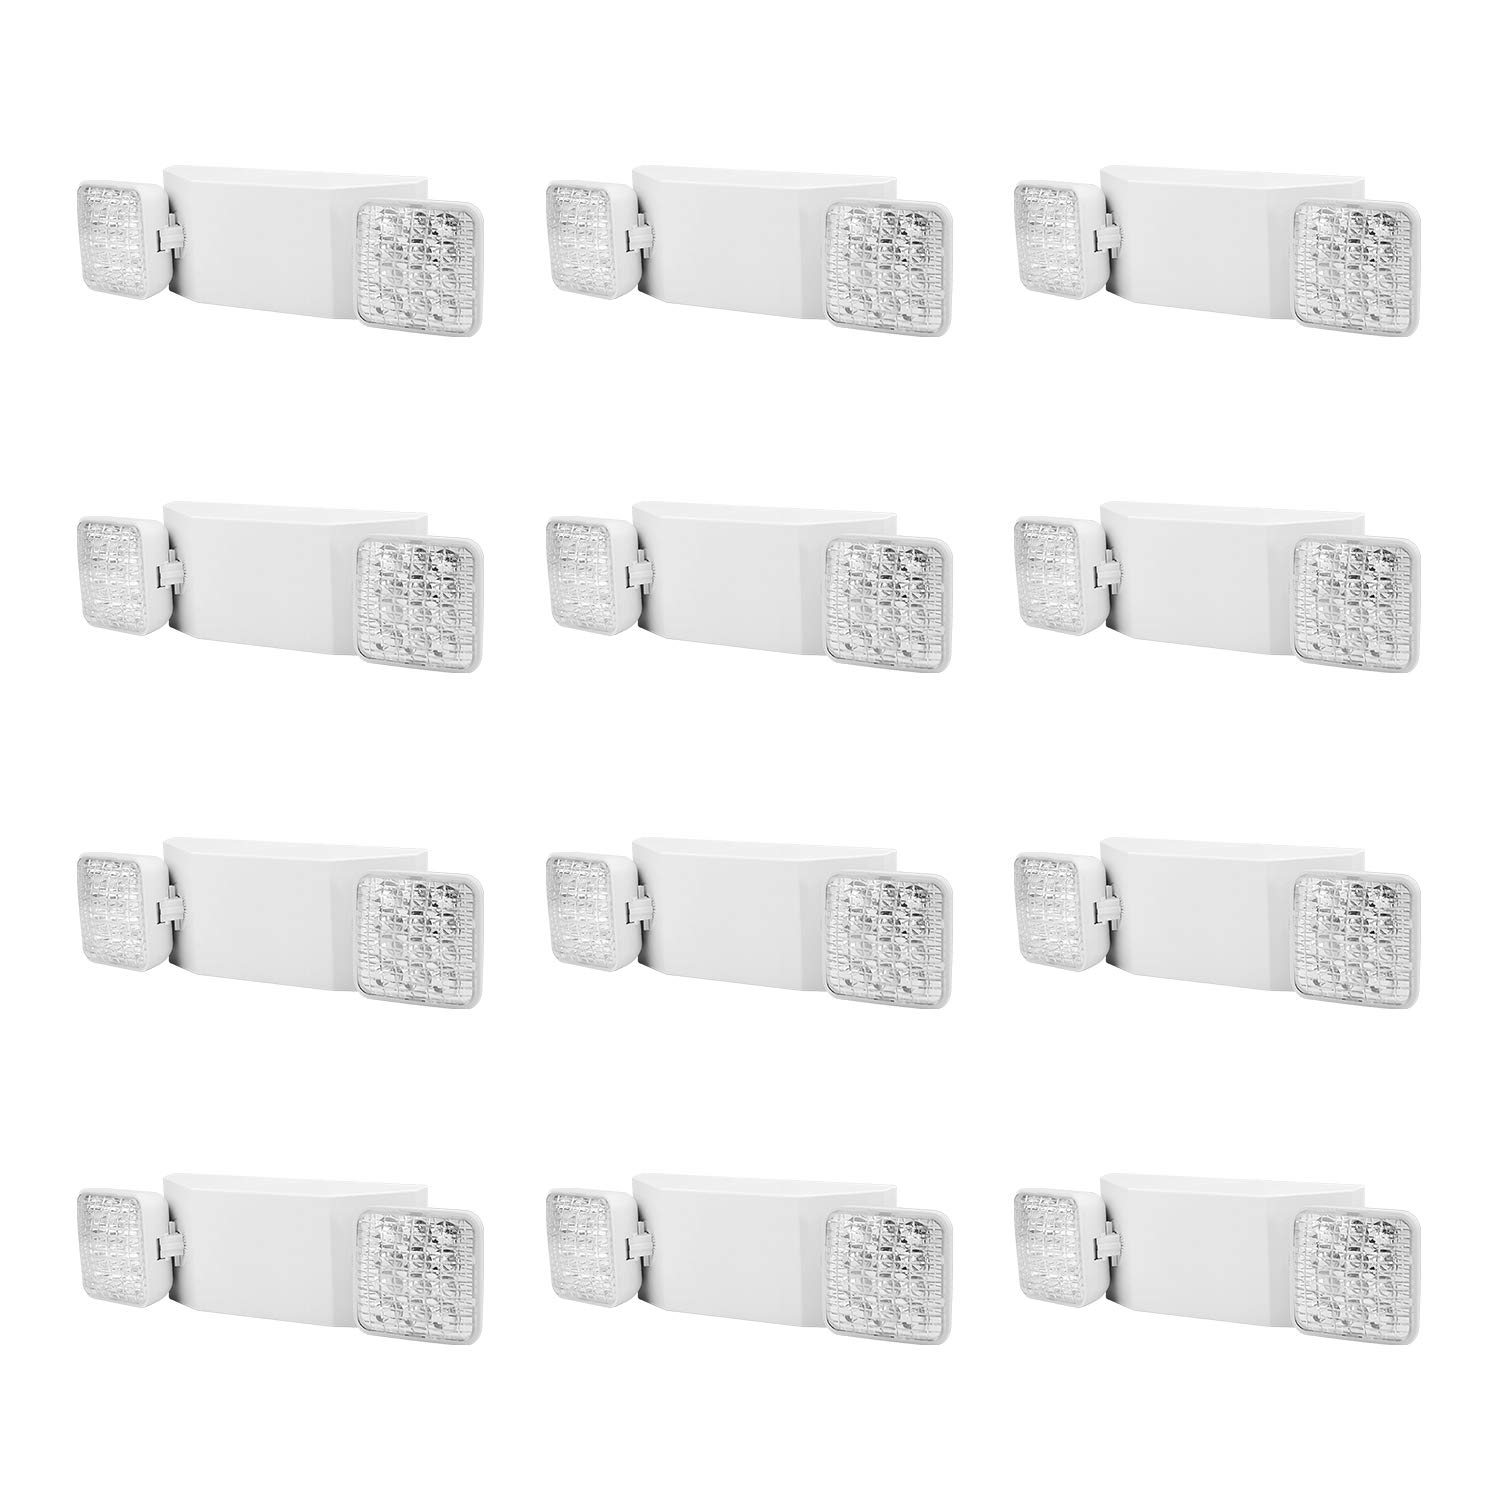 AKT LIGHTING Commercial Emergency Light, Back-up Battery Emergency Exit Lighting Fixtures with Adjustable Hardwired 2 LED Head Wall Mount White for Hallways/Stairways, UL Certified(12 Pack)